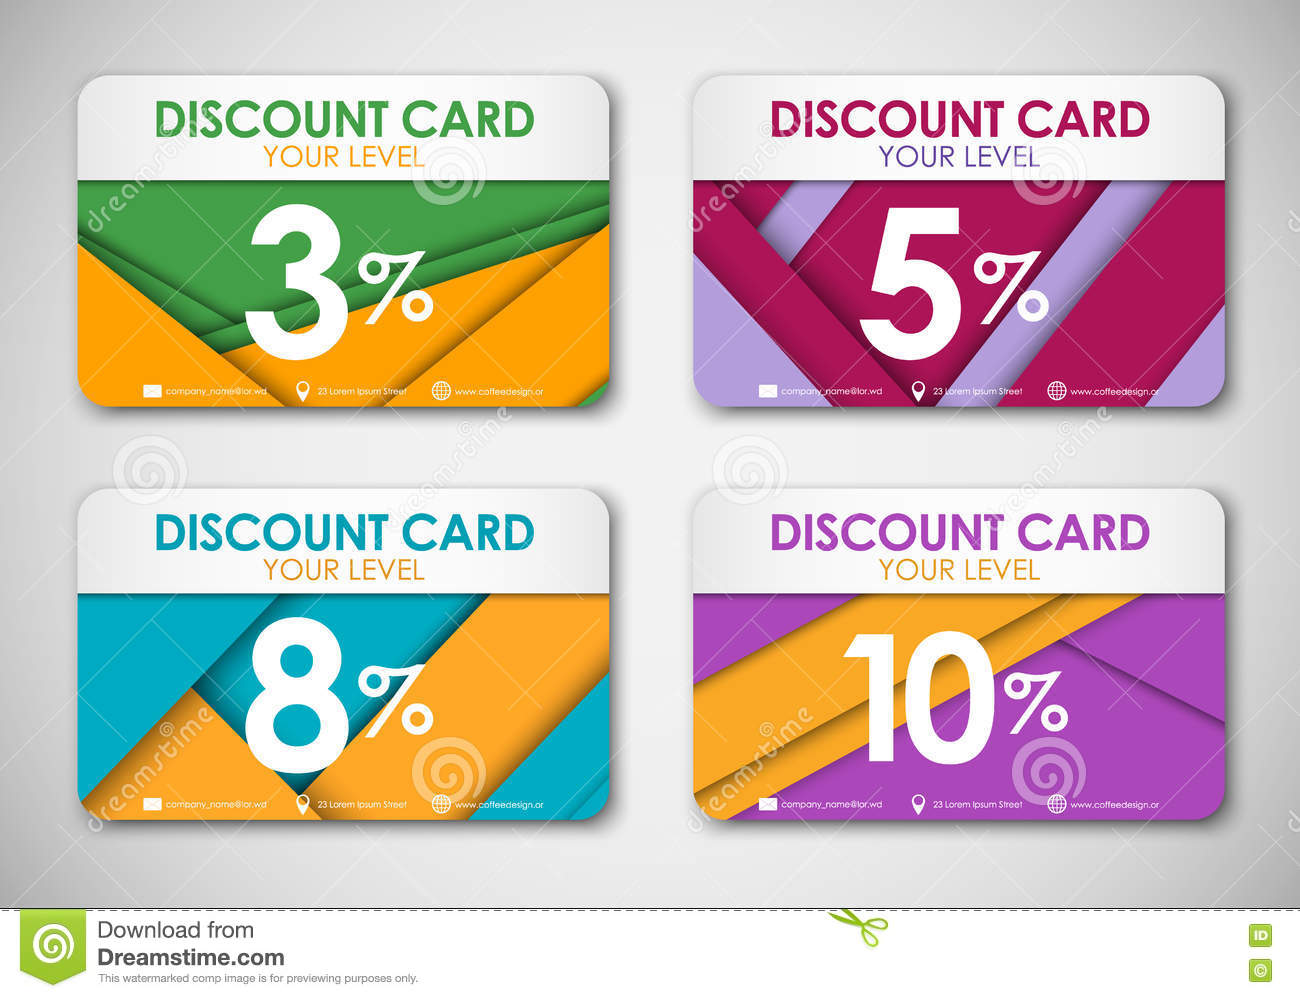 Design of discount card - A Set Of Discount Cards In The Style Of The Material Design